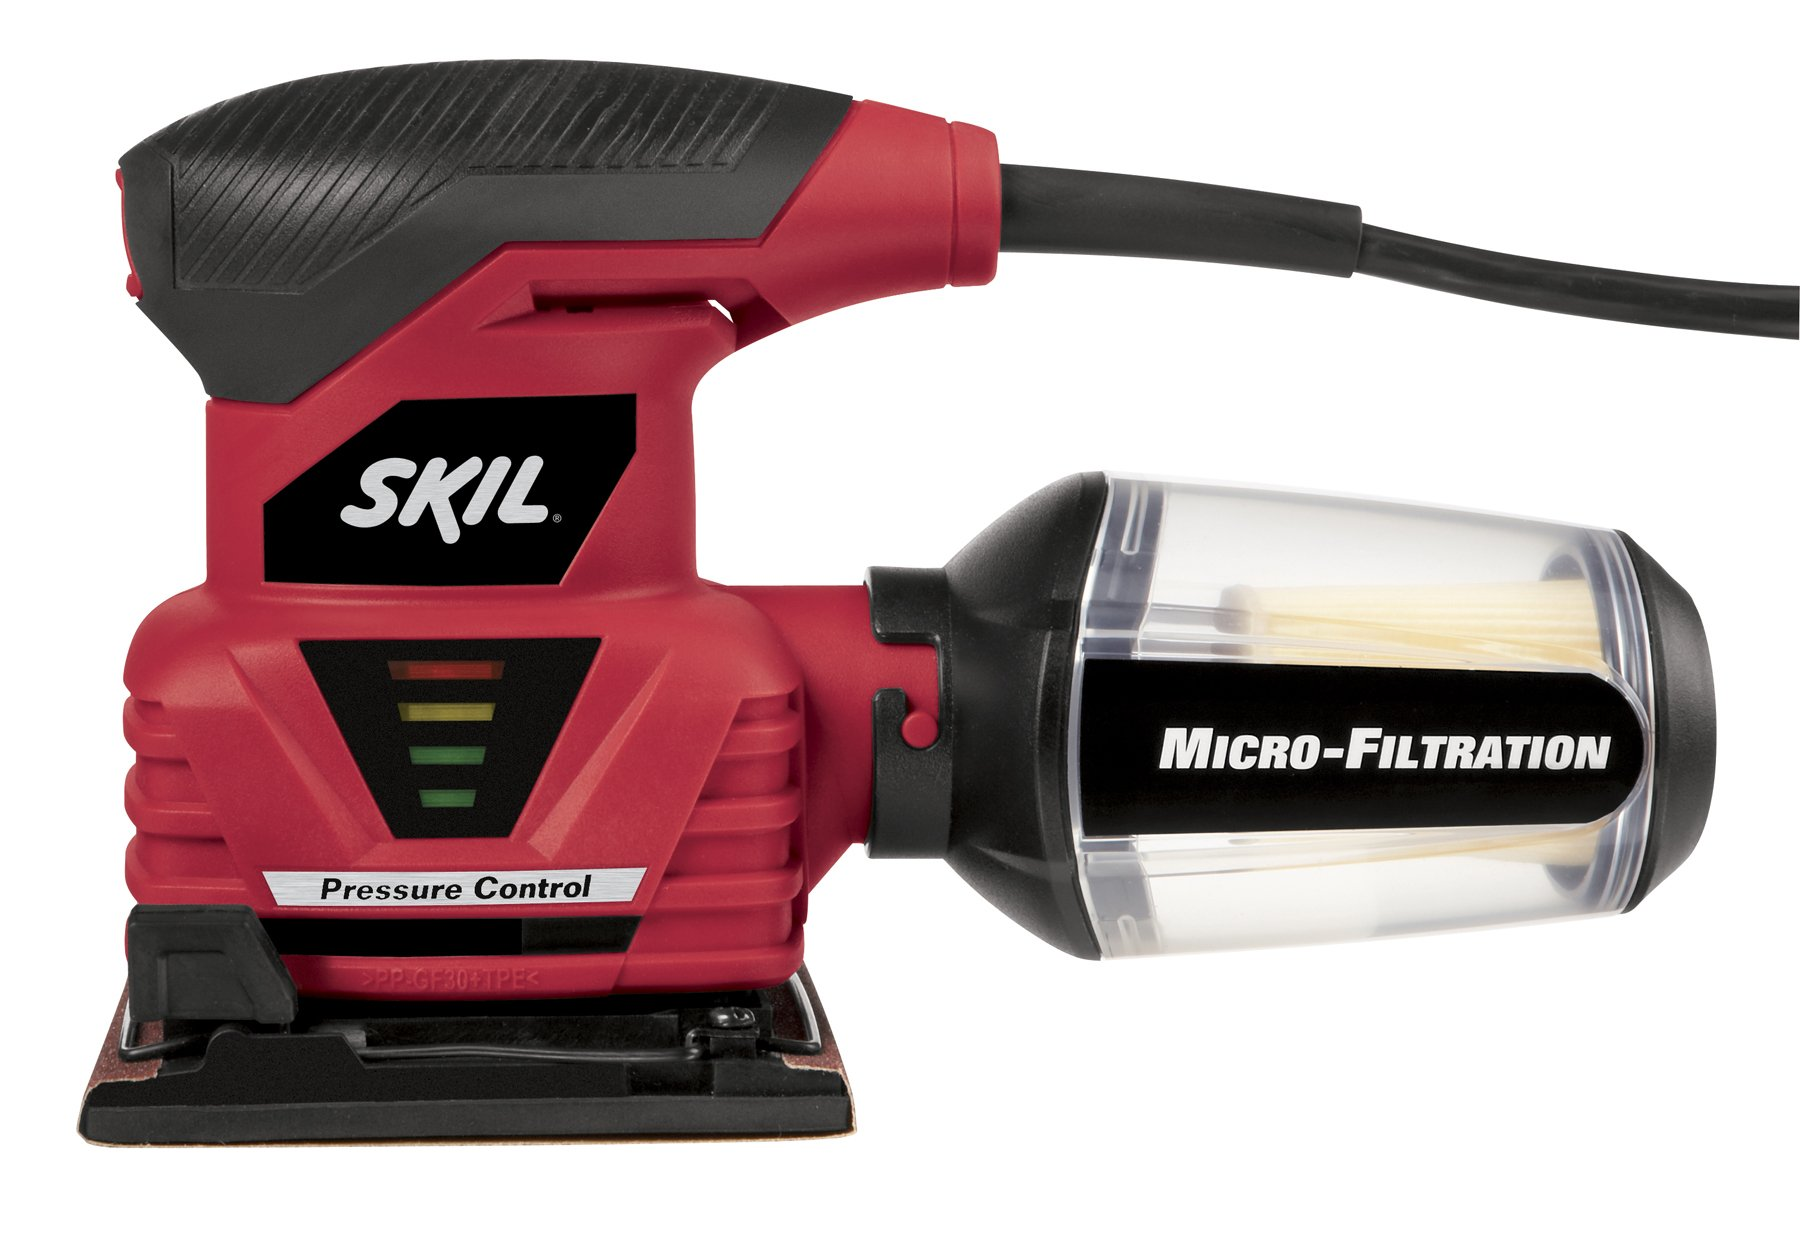 SKIL 7292-02 2.0 Amp 1/4 Sheet Palm Sander with Pressure Control by Skil (Image #2)